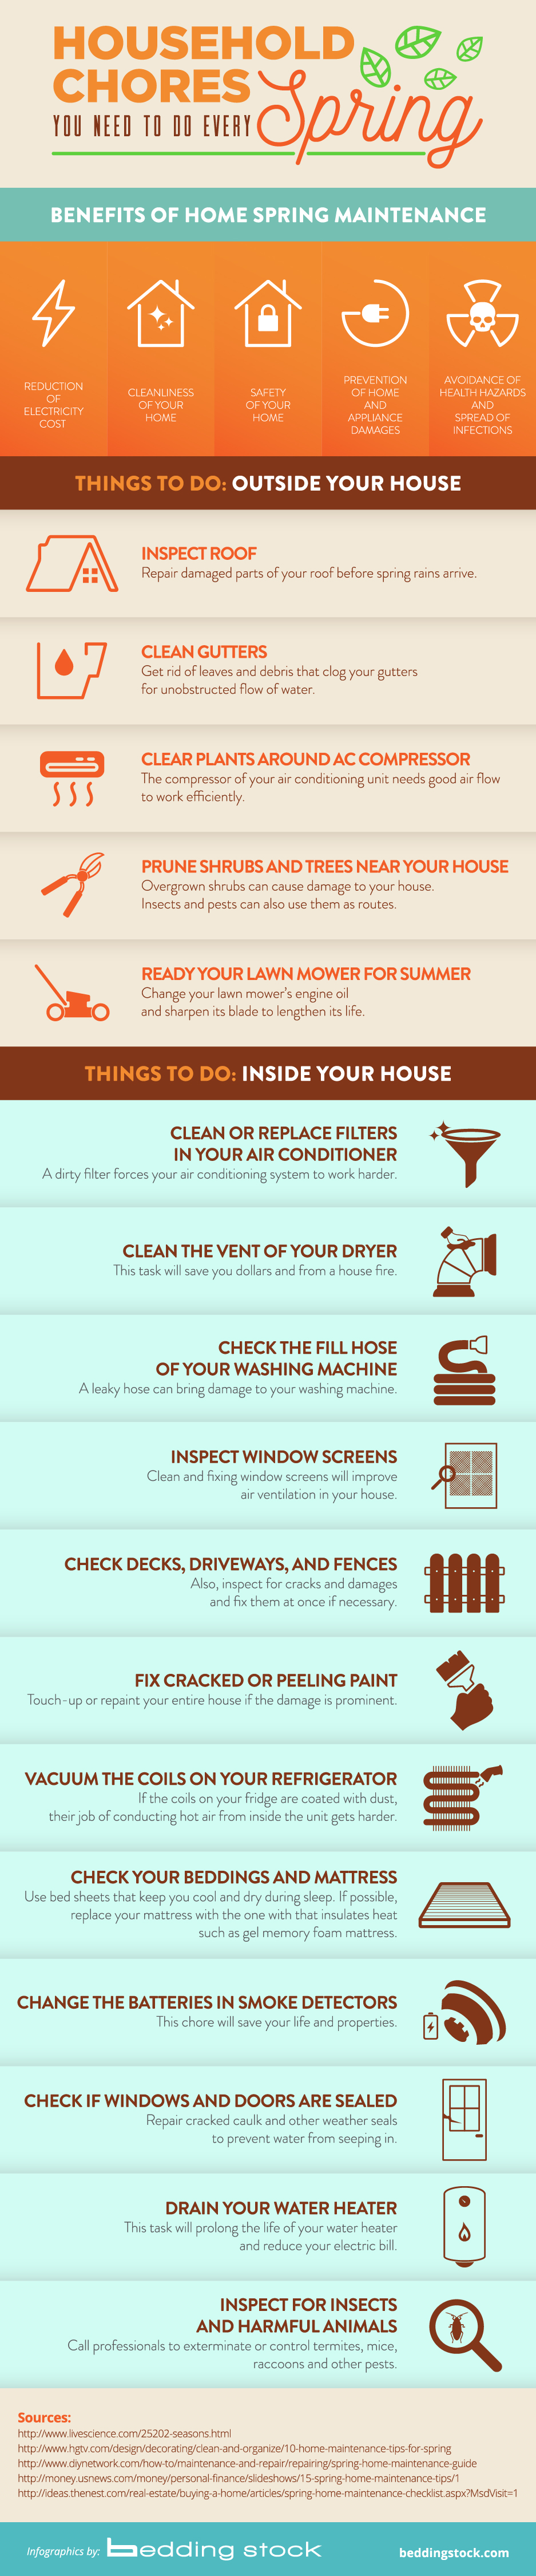 Household Chores You Need To Do Every Spring